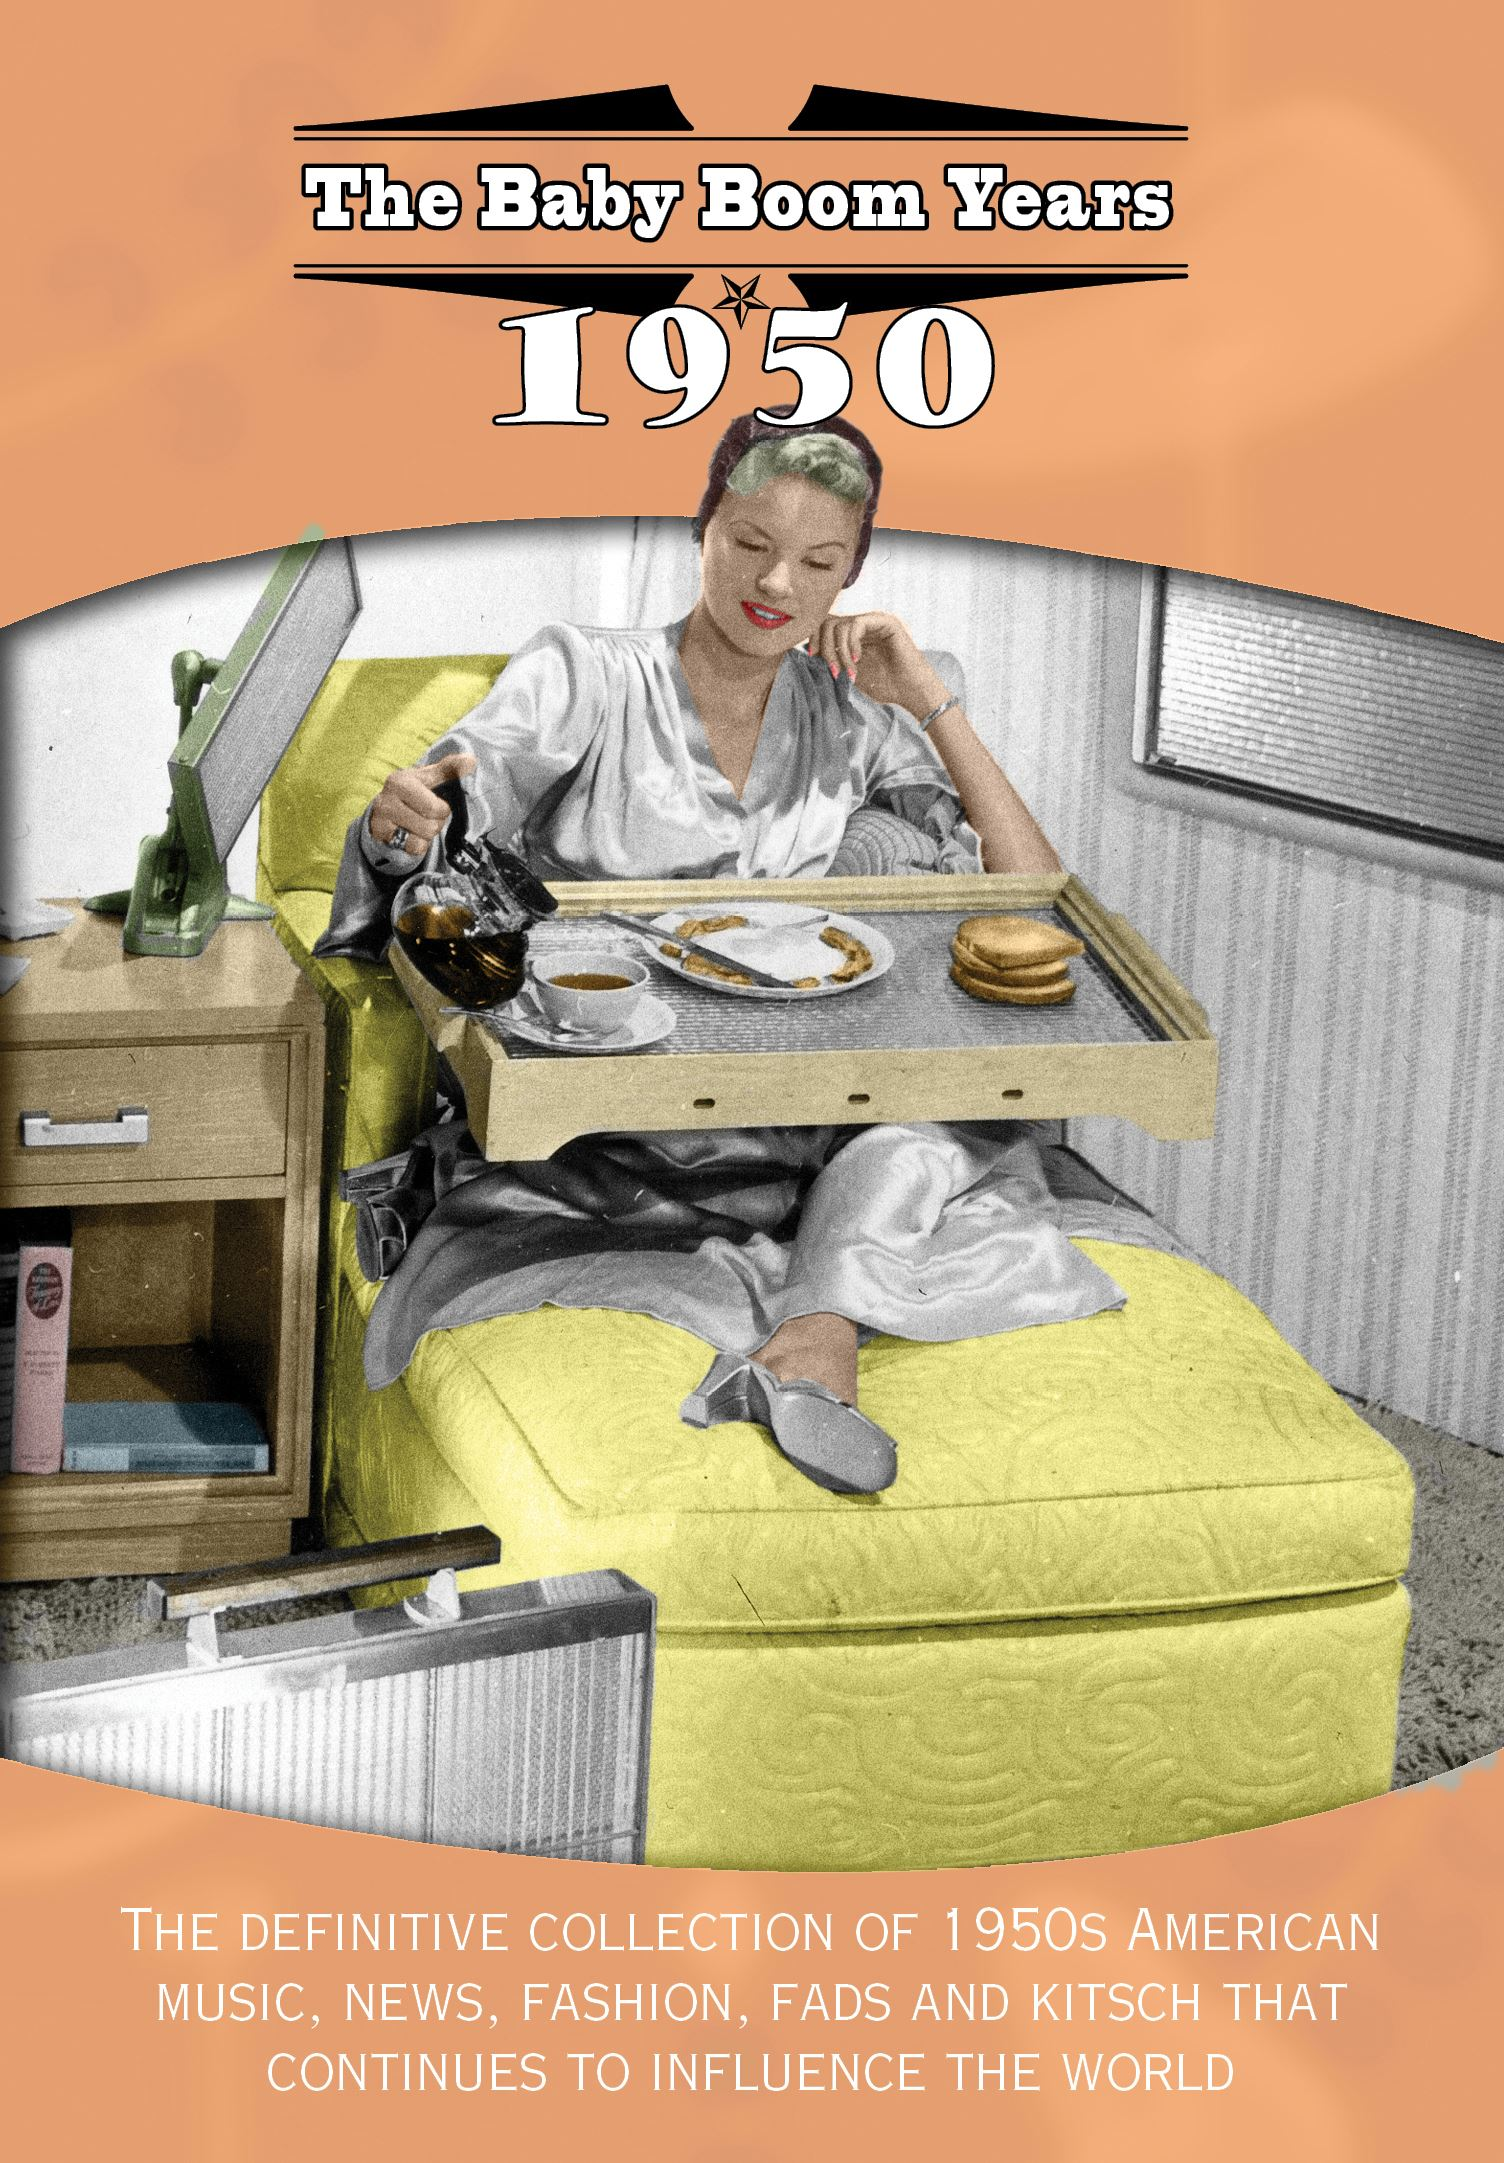 The Baby Boom Years: 1950